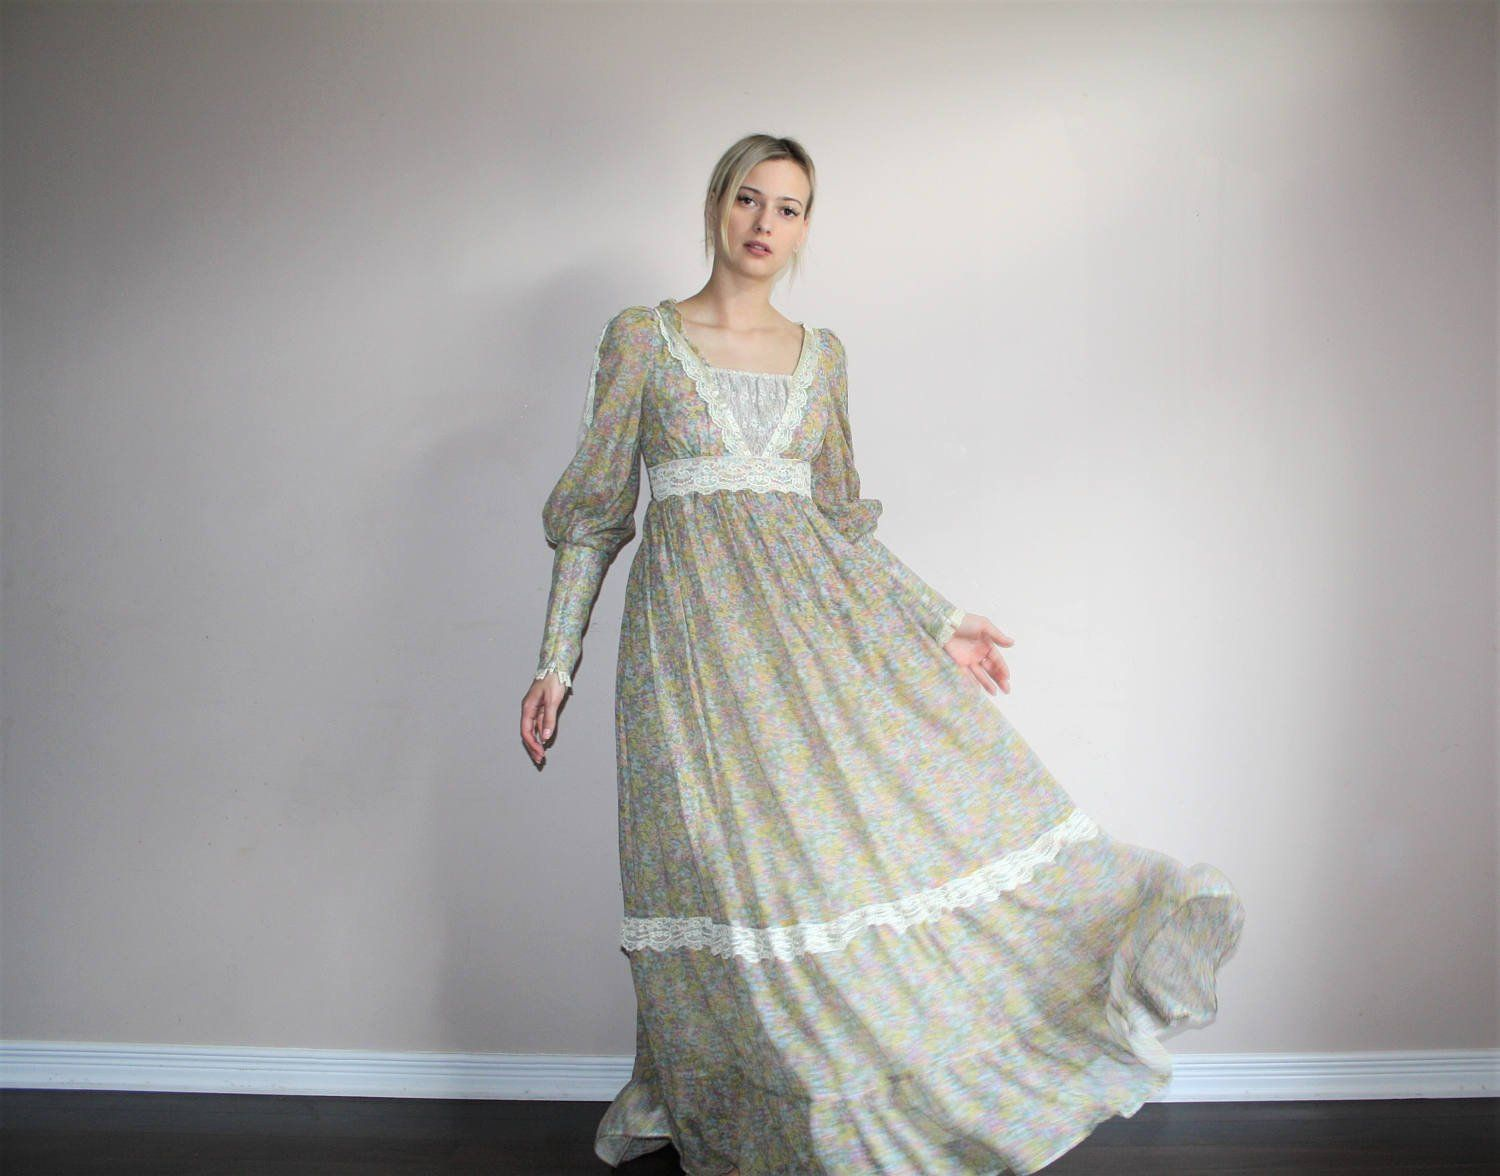 S vintage gunne sax floral lace boho prairie maxi wedding dress